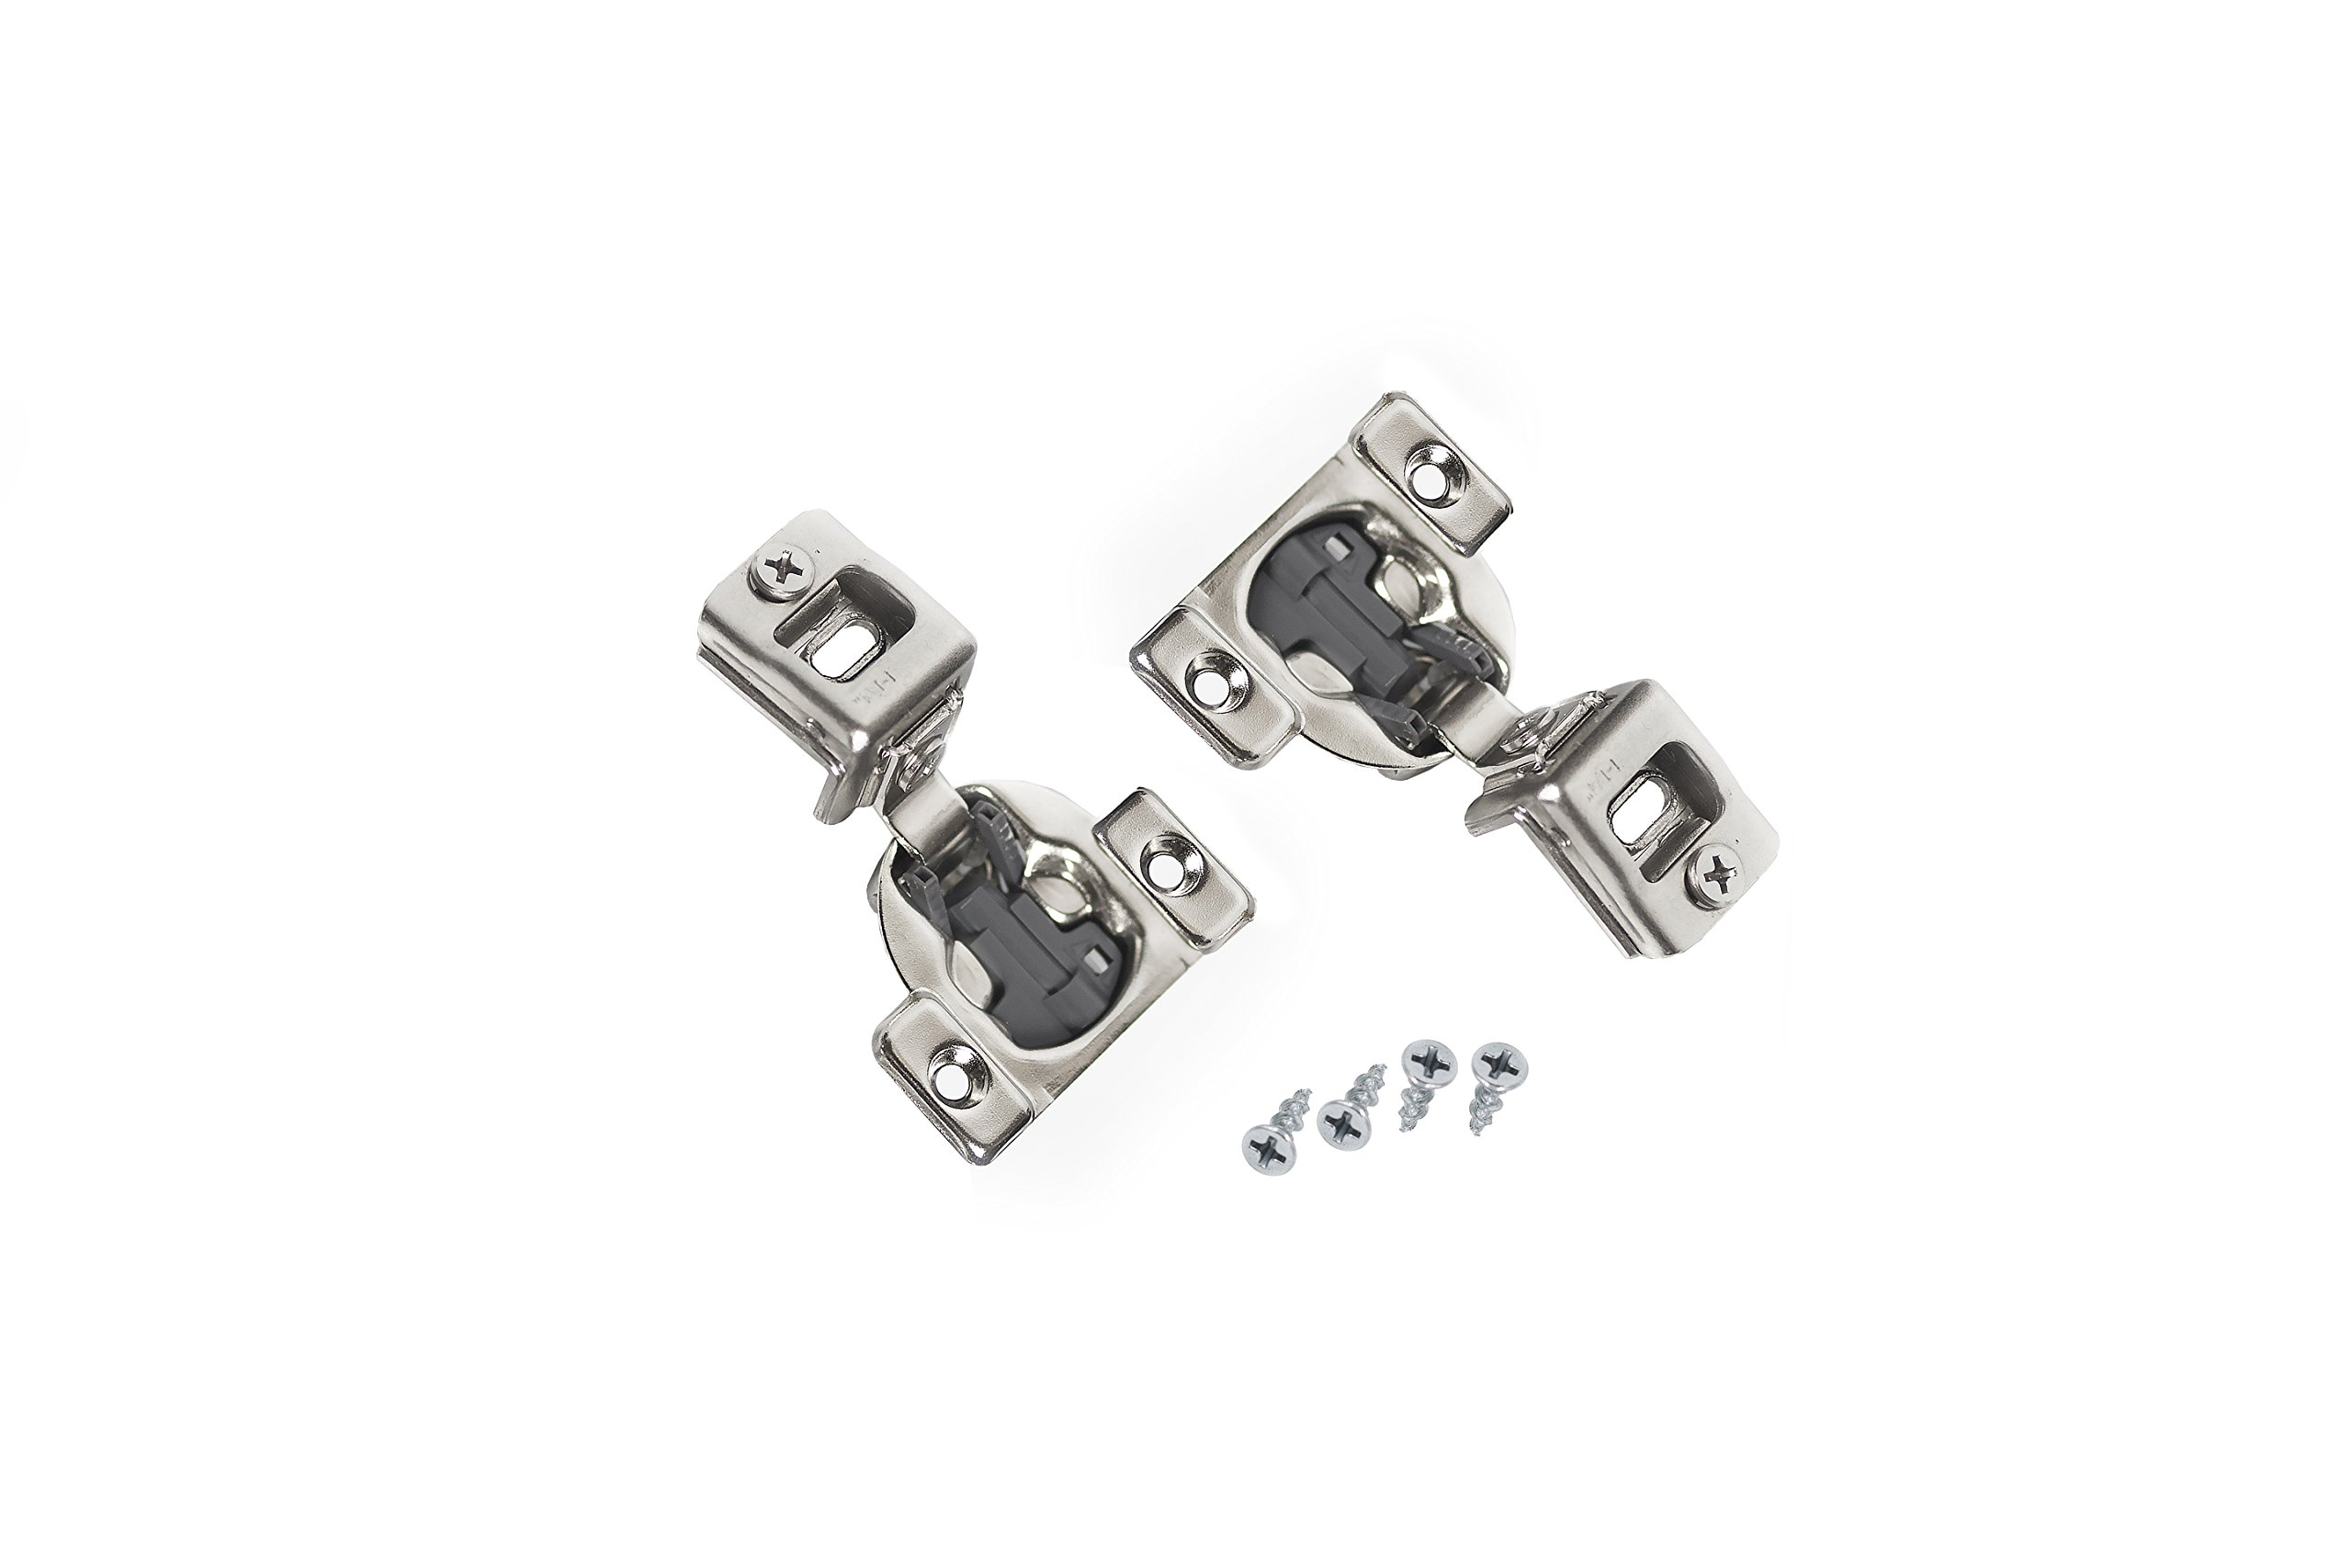 Comet Pro Hardware E55 1-1/4'' Compact Soft Close Face Frame Cabinet Door Hinges Full Overlay Nickel Plated, Screws are Included (40 Pack)